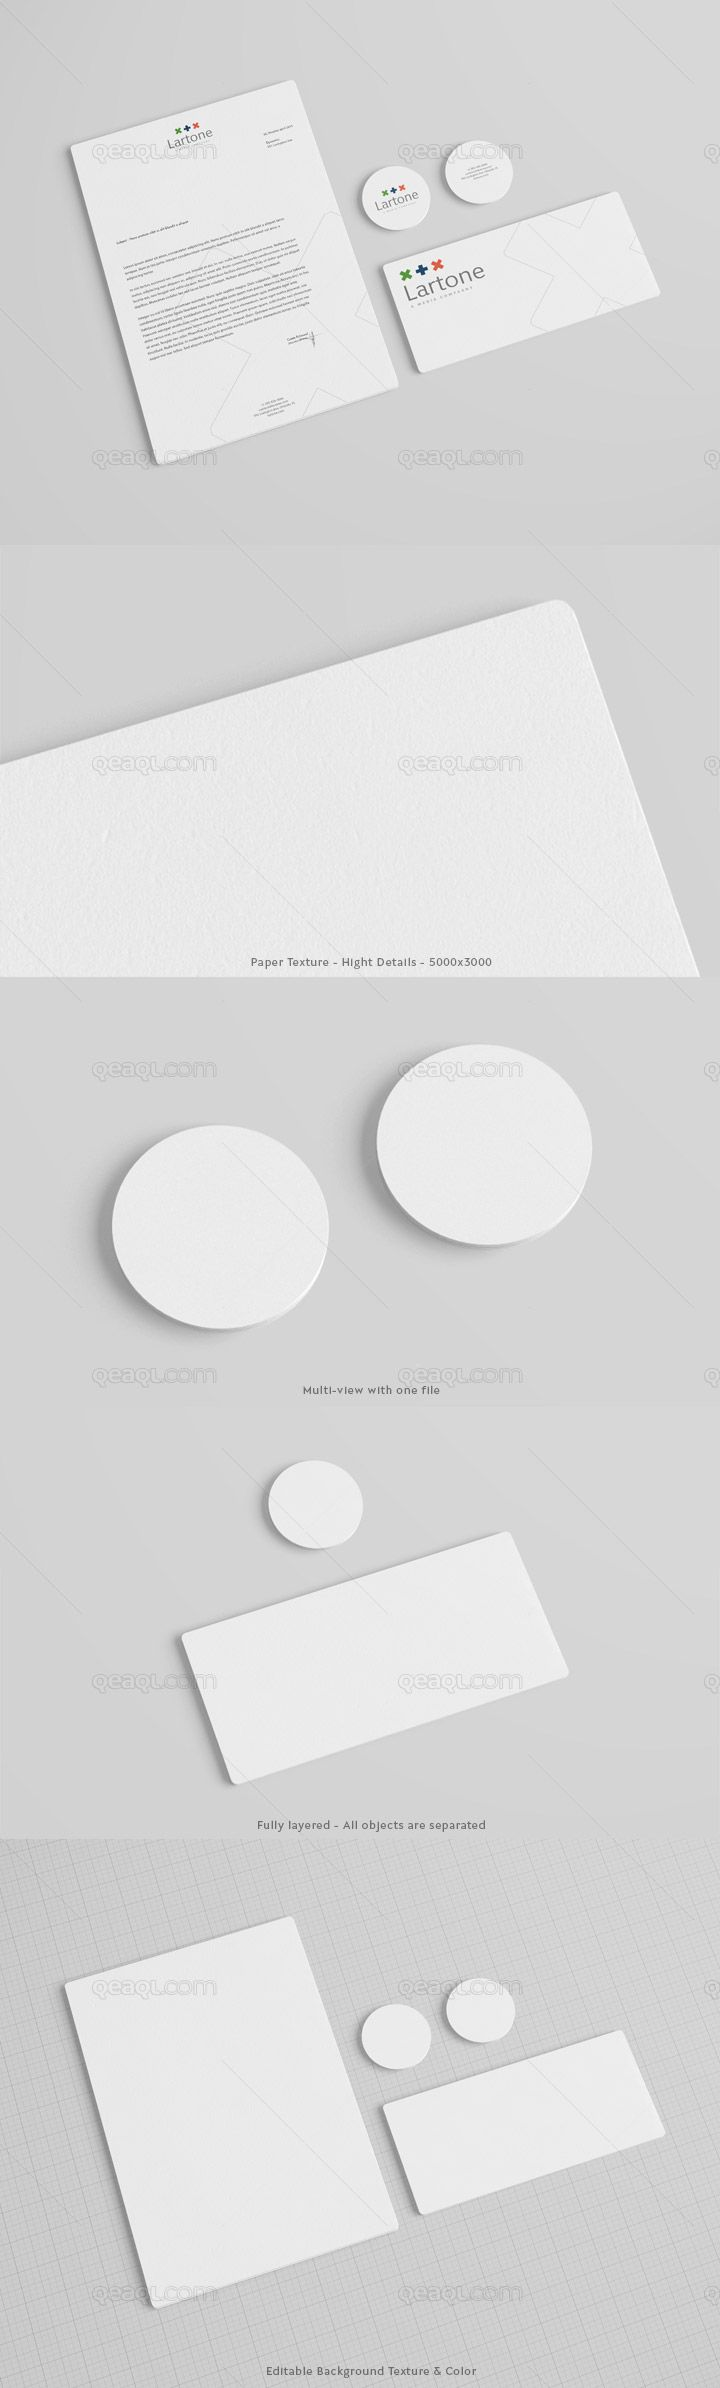 129 best mockups images on pinterest miniatures mockup and model free stationery mock up with rounded corner and round business card each objects are separated editable background texture via smart object reheart Images